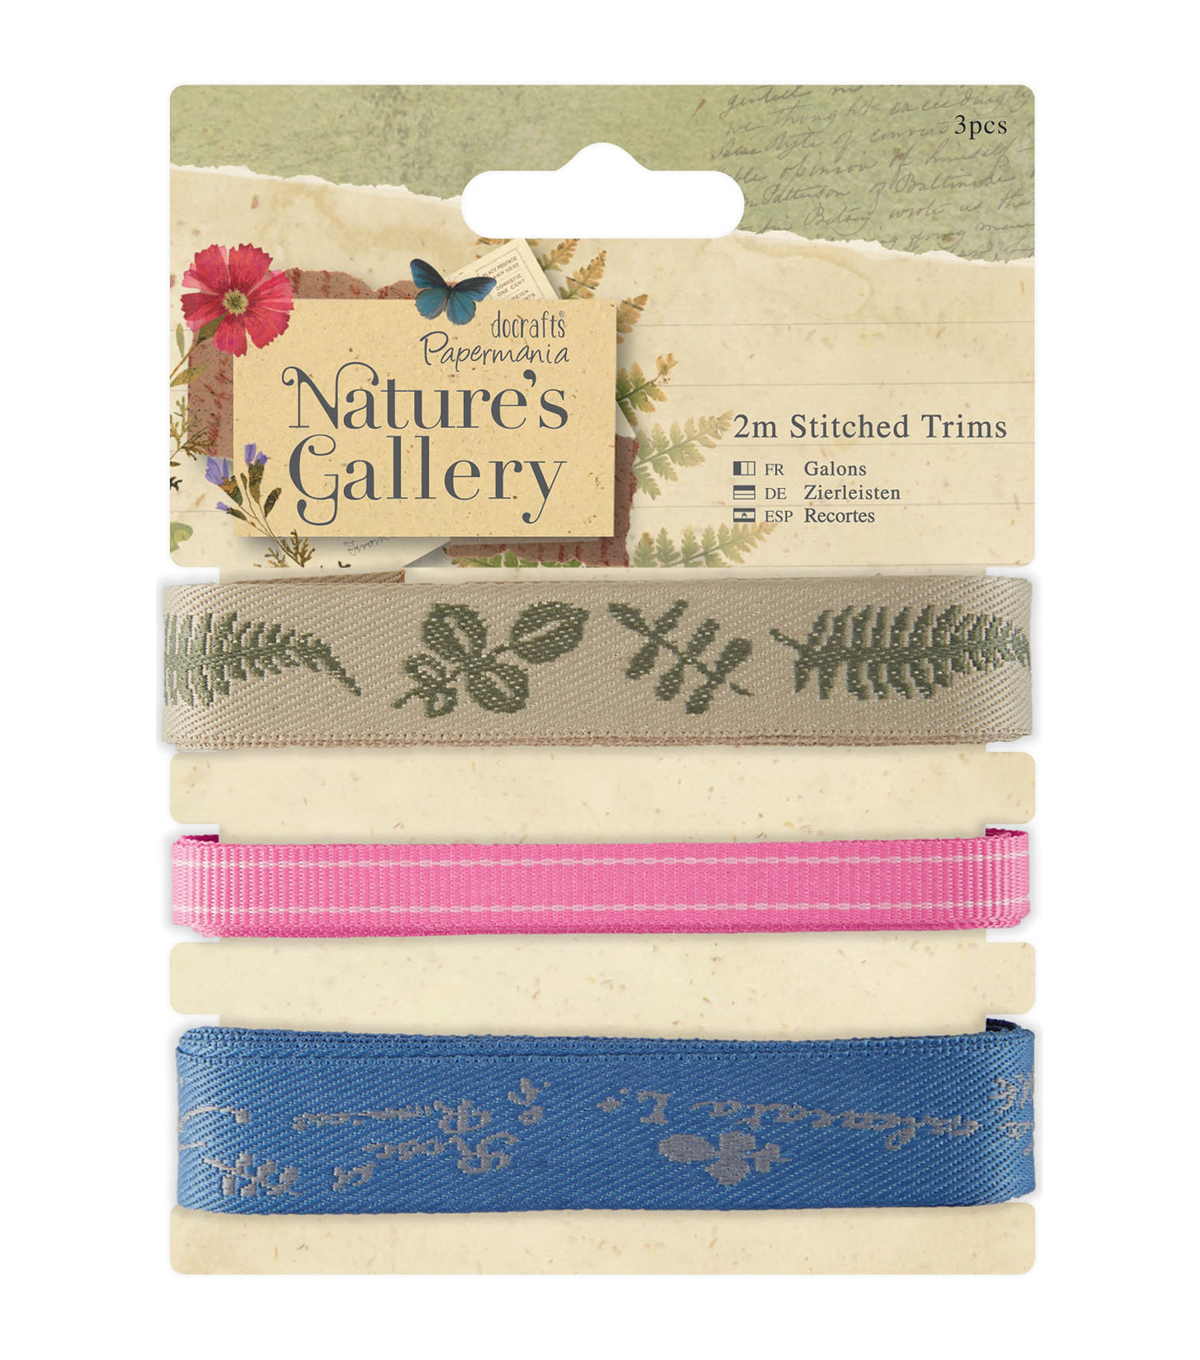 Papermania Nature\u0027s Gallery 3pcs Stitched Trims